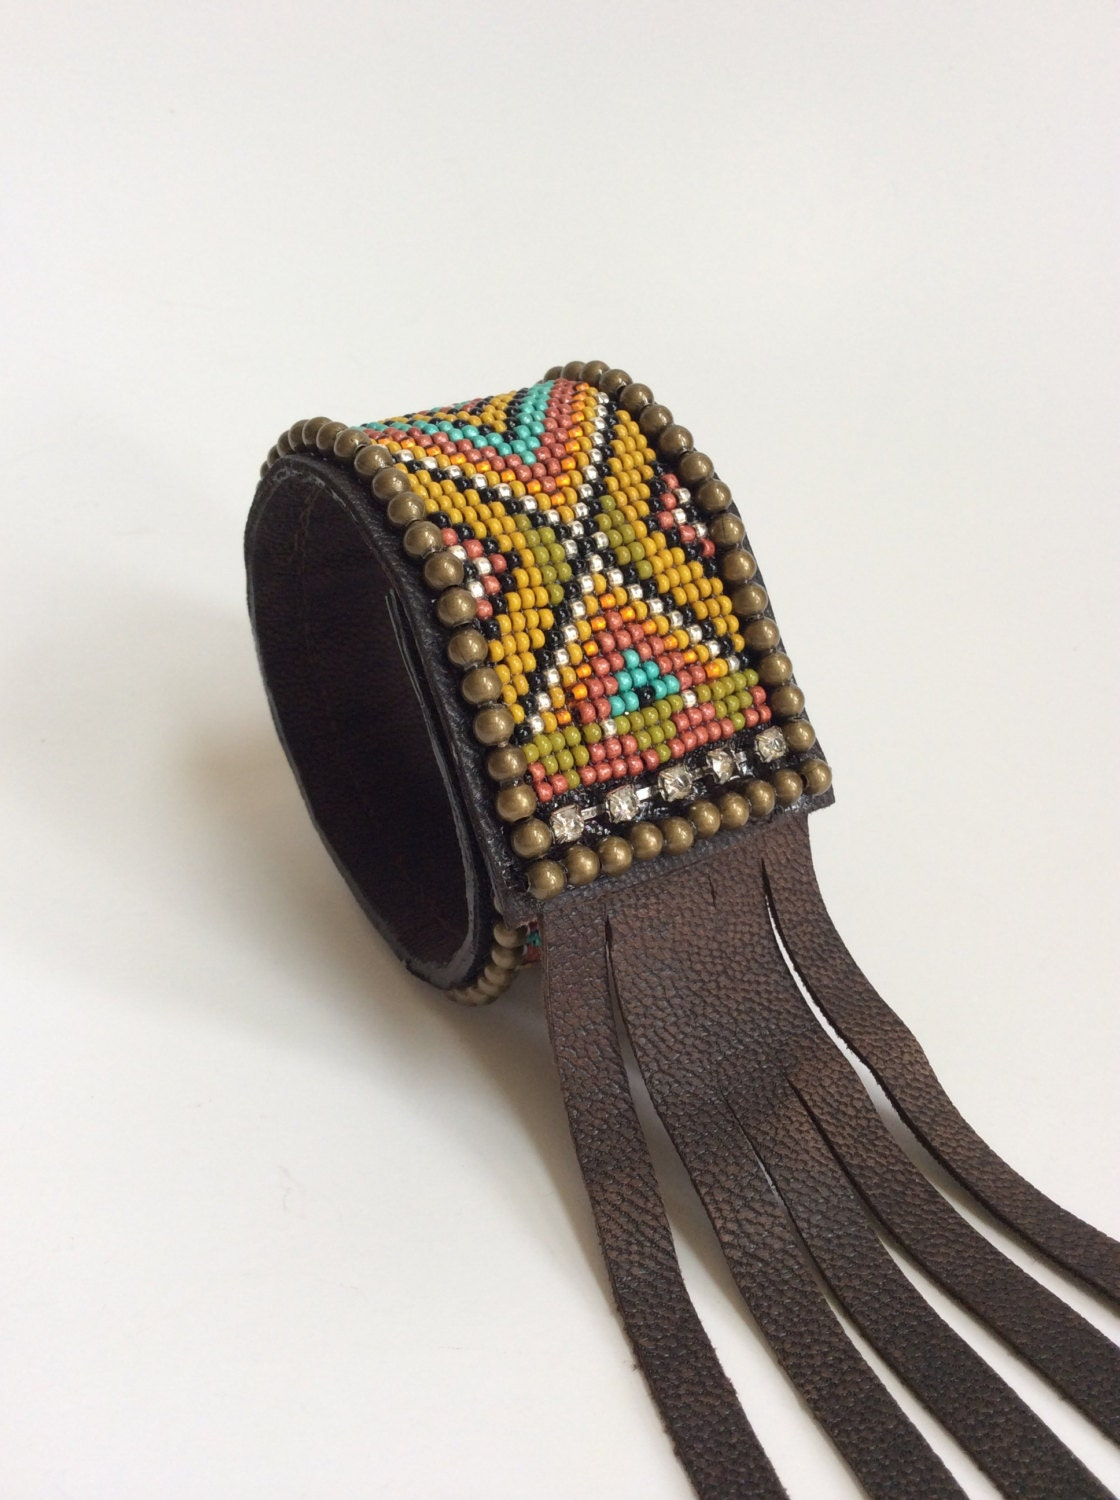 Beaded Leather Cuff Bracelet With Fringe Boho Bracelet